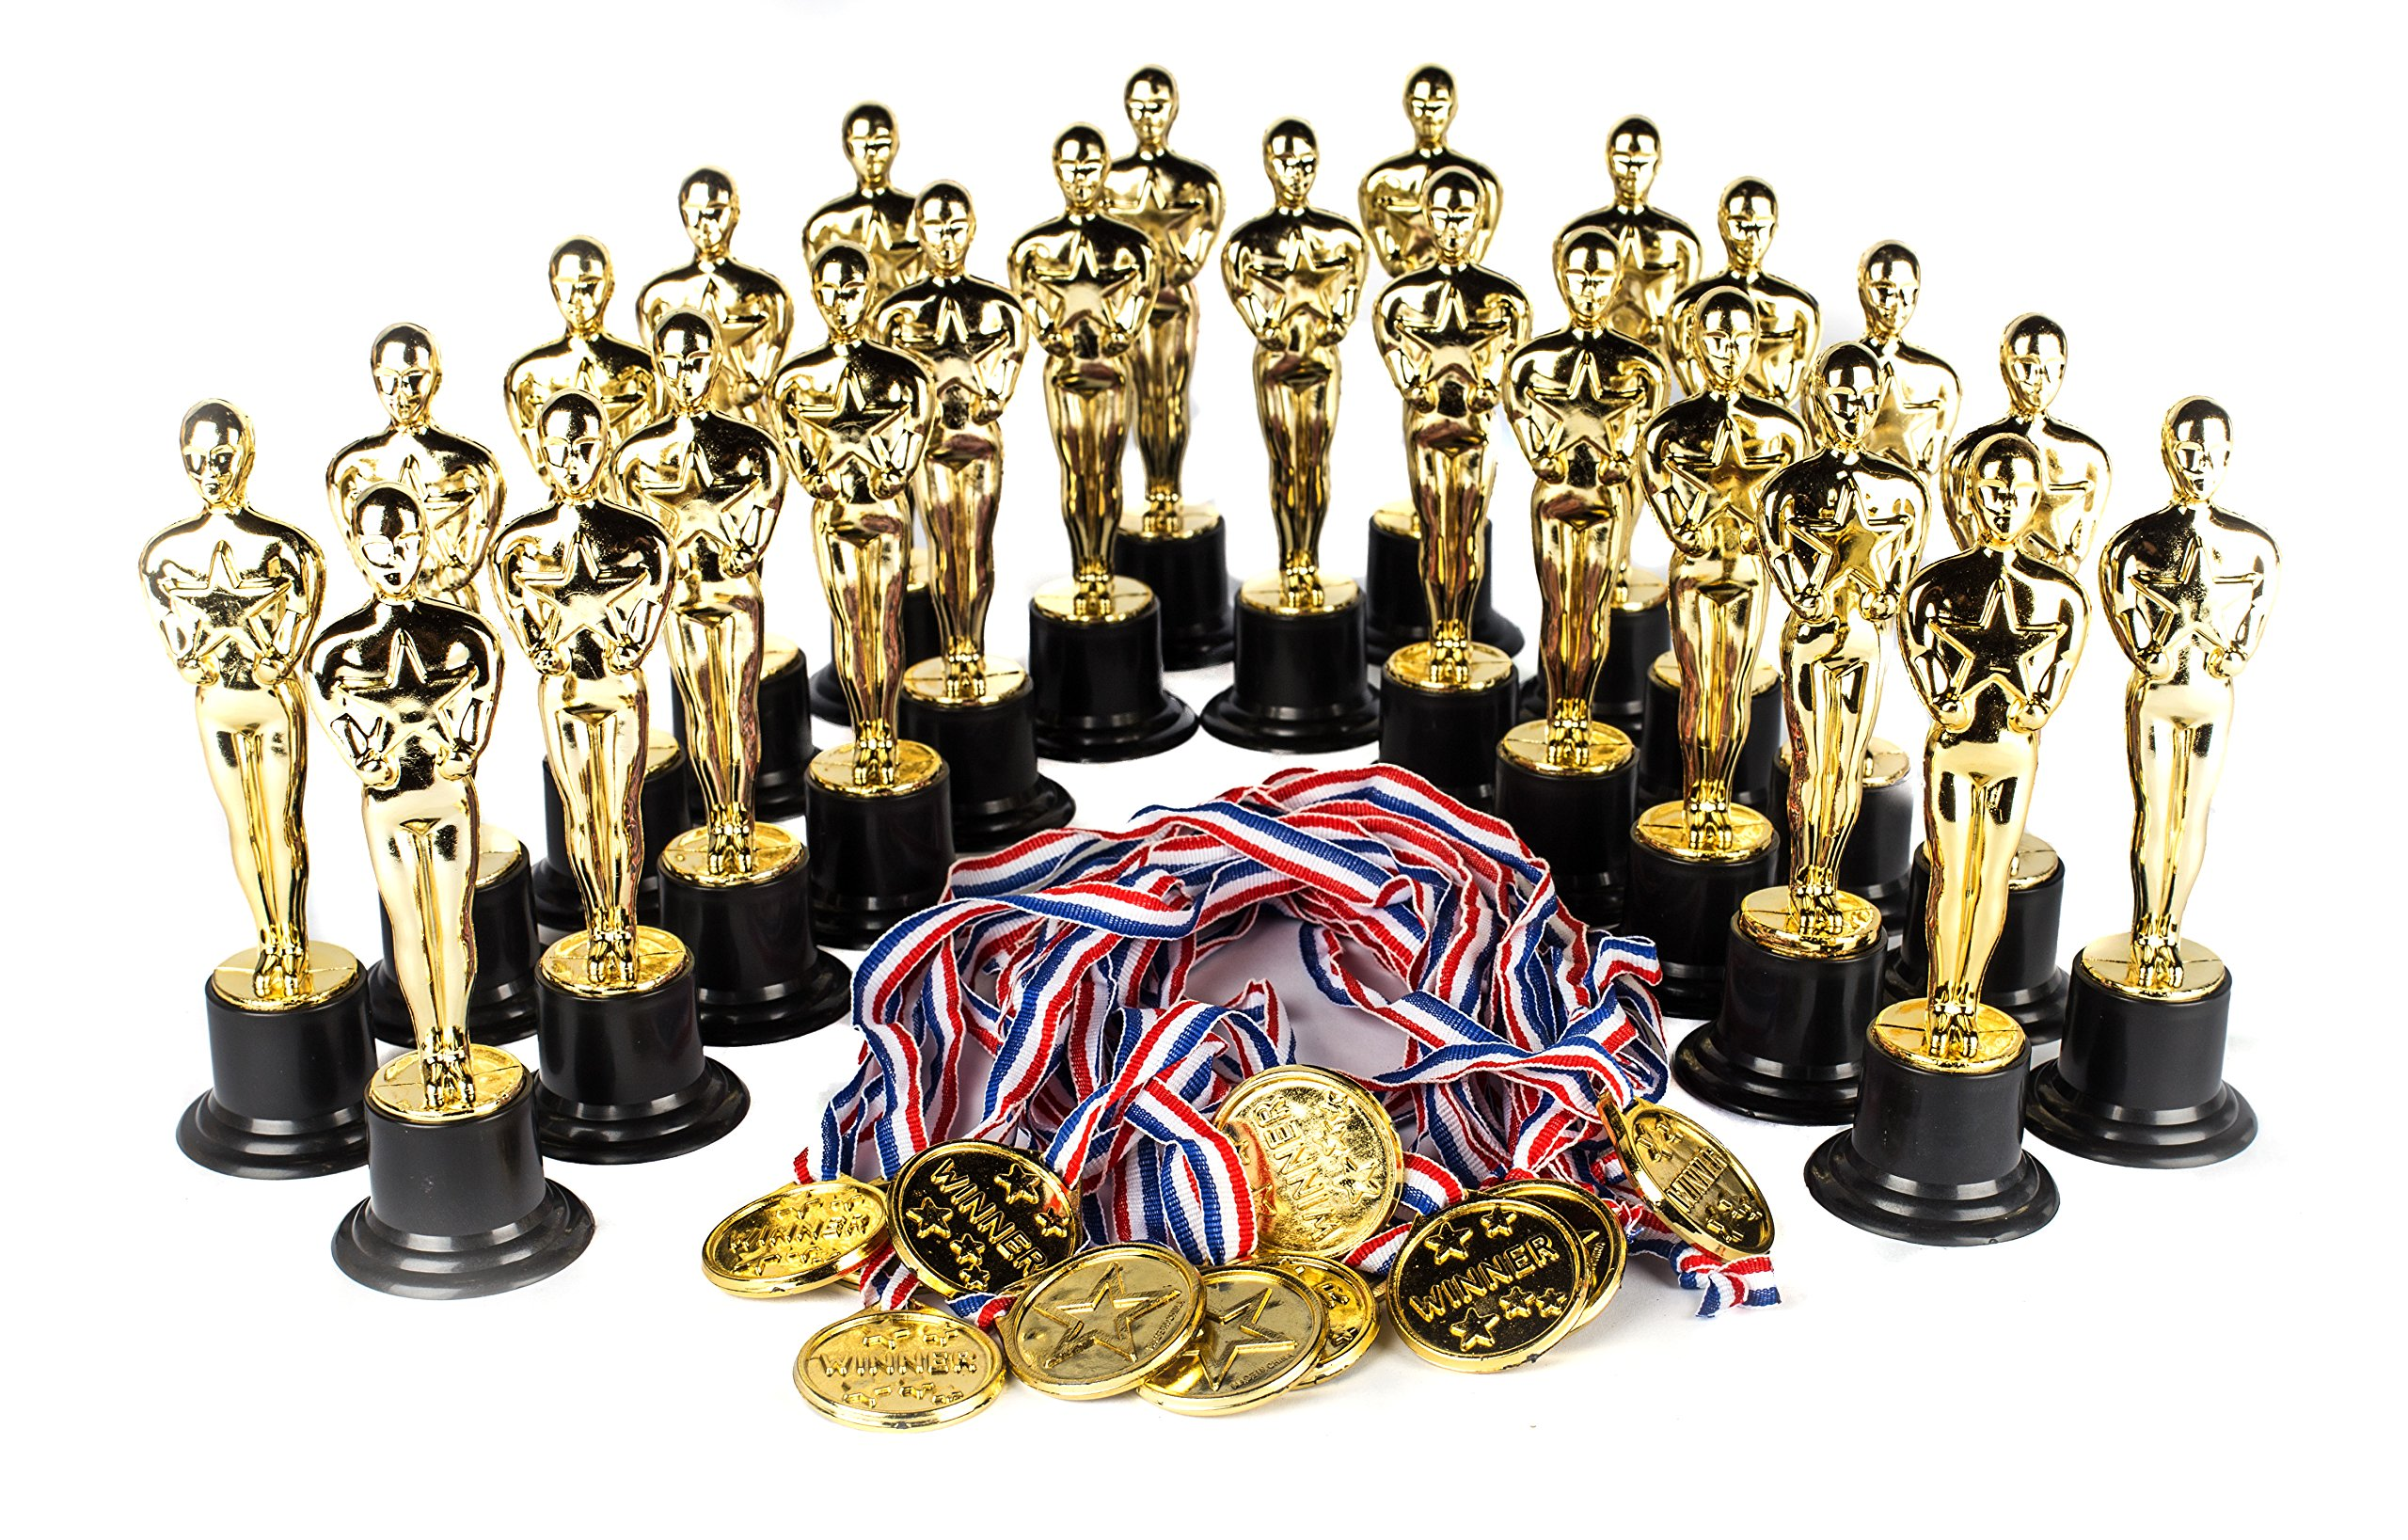 "Award Medal of Honor Trophy Award Set of 48 Includes 24 Gold Winner Award Medals; 24 Gold Award Trophy Statues 6"", Award Trophies for Award Ceremonies, Party Favors, Goody Bag Stuffers, Party Supplies"